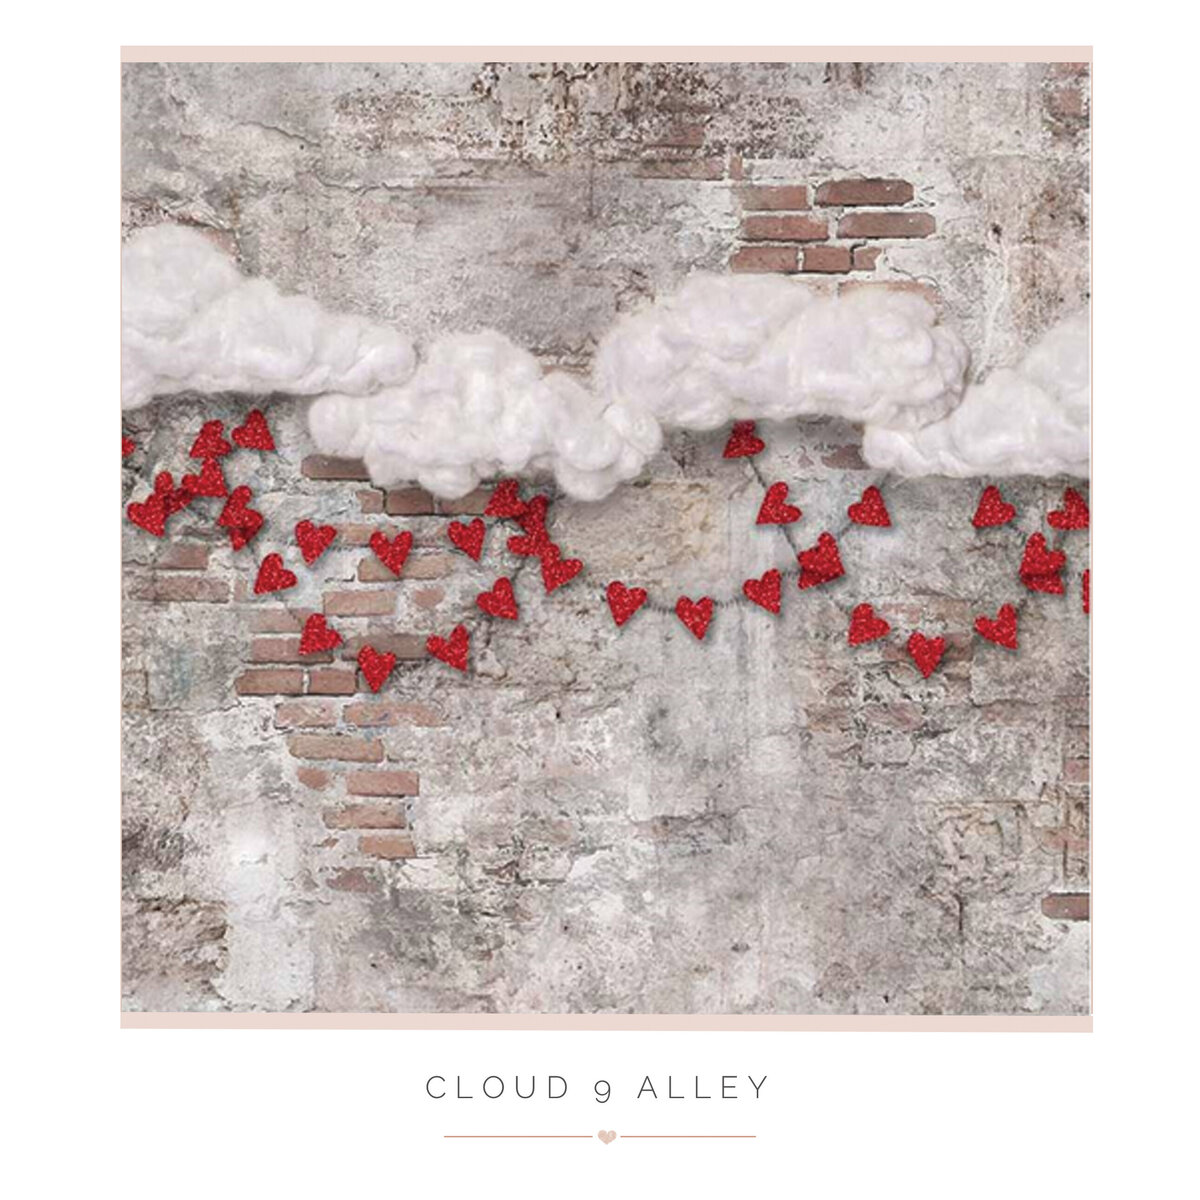 Cloud 9 Alley